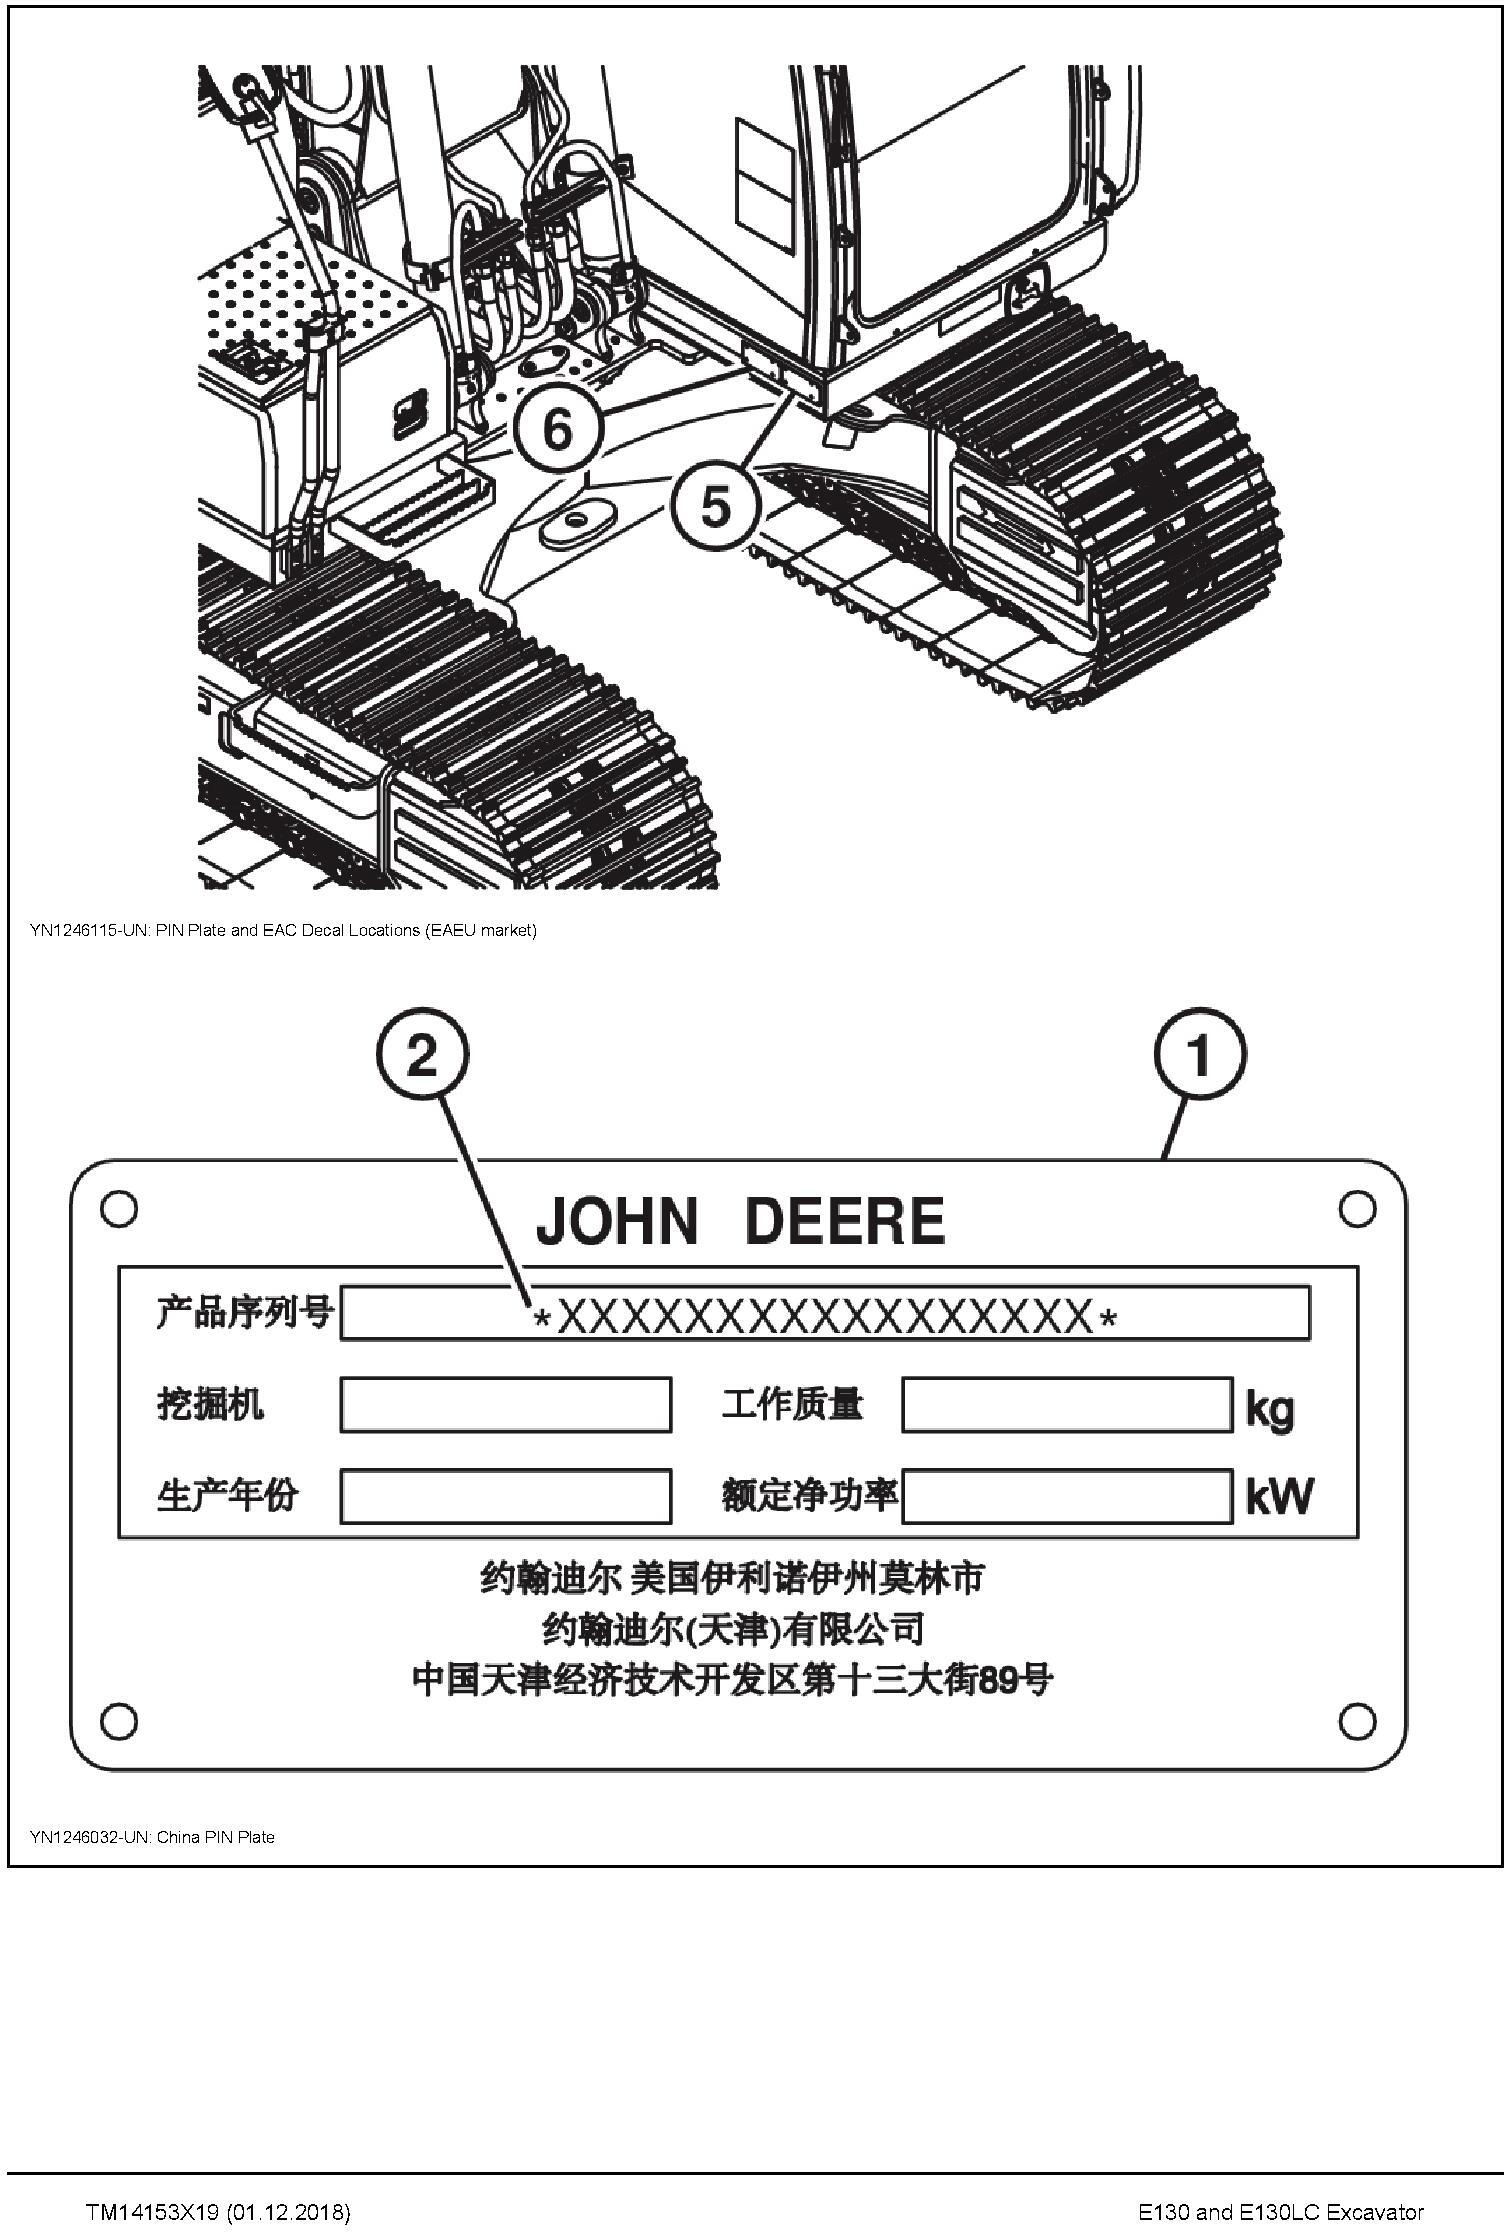 John Deere E130, E130LC (SN.from D300003) Excavator Repair Technical Manual (TM14153X19) - 1